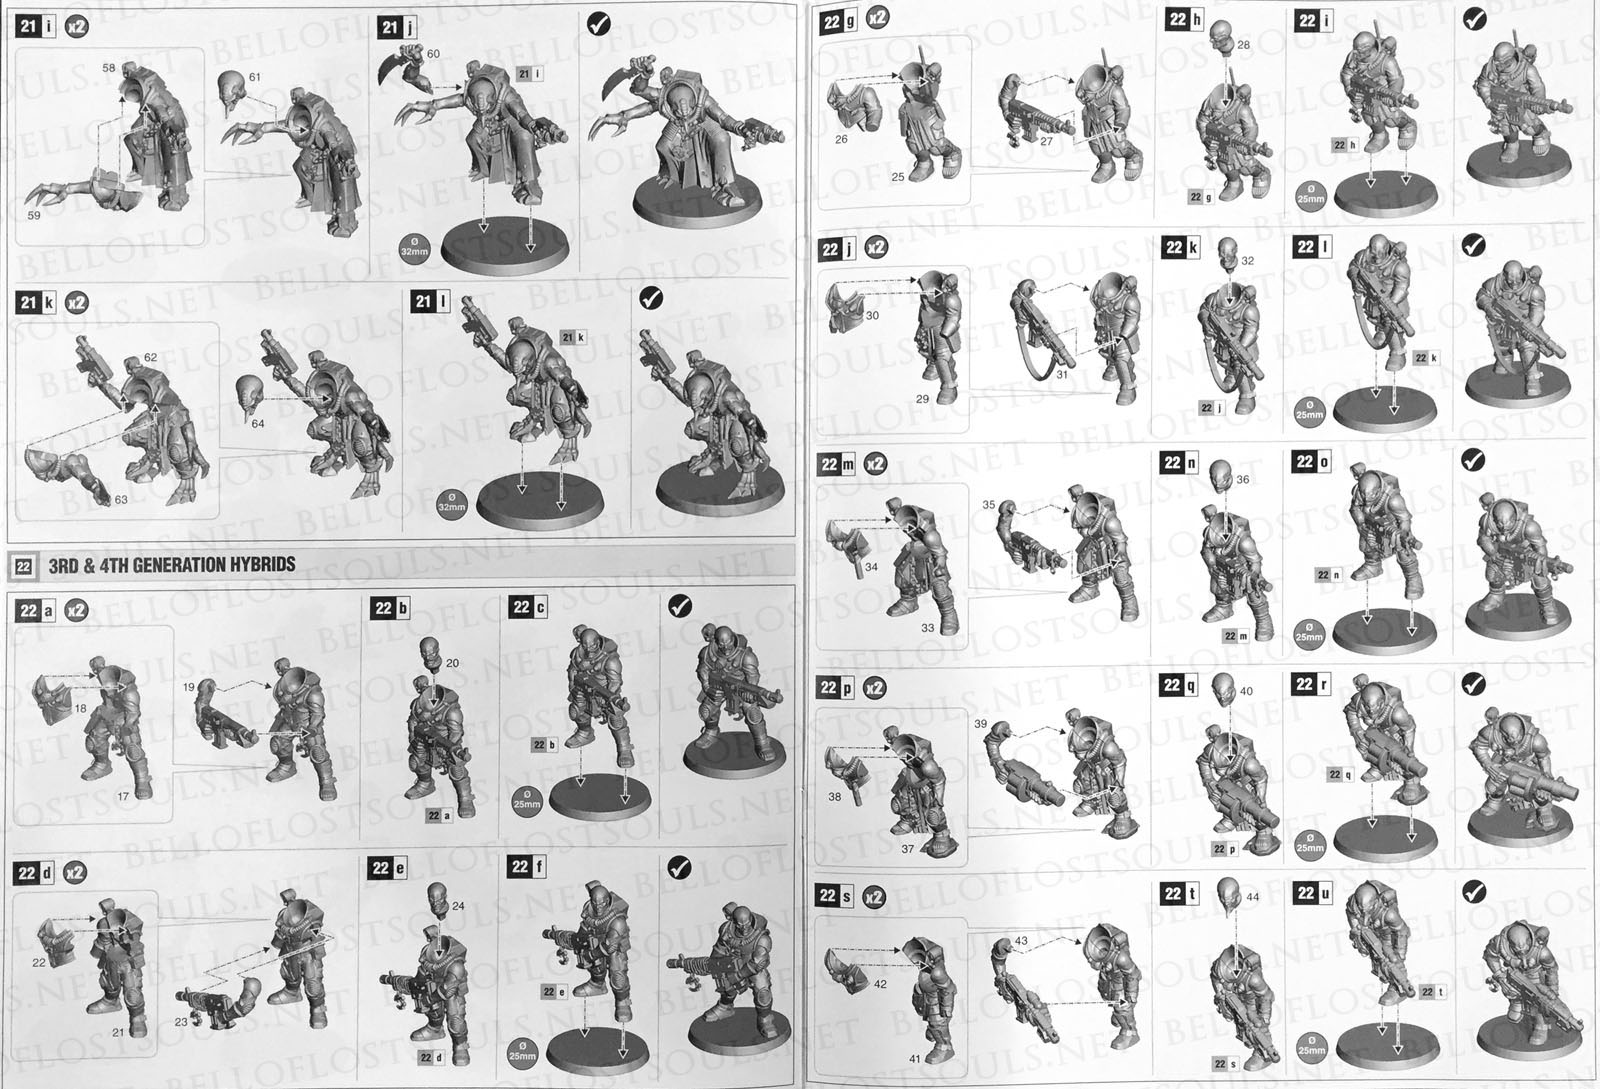 rogue infinity rig assembly instructions